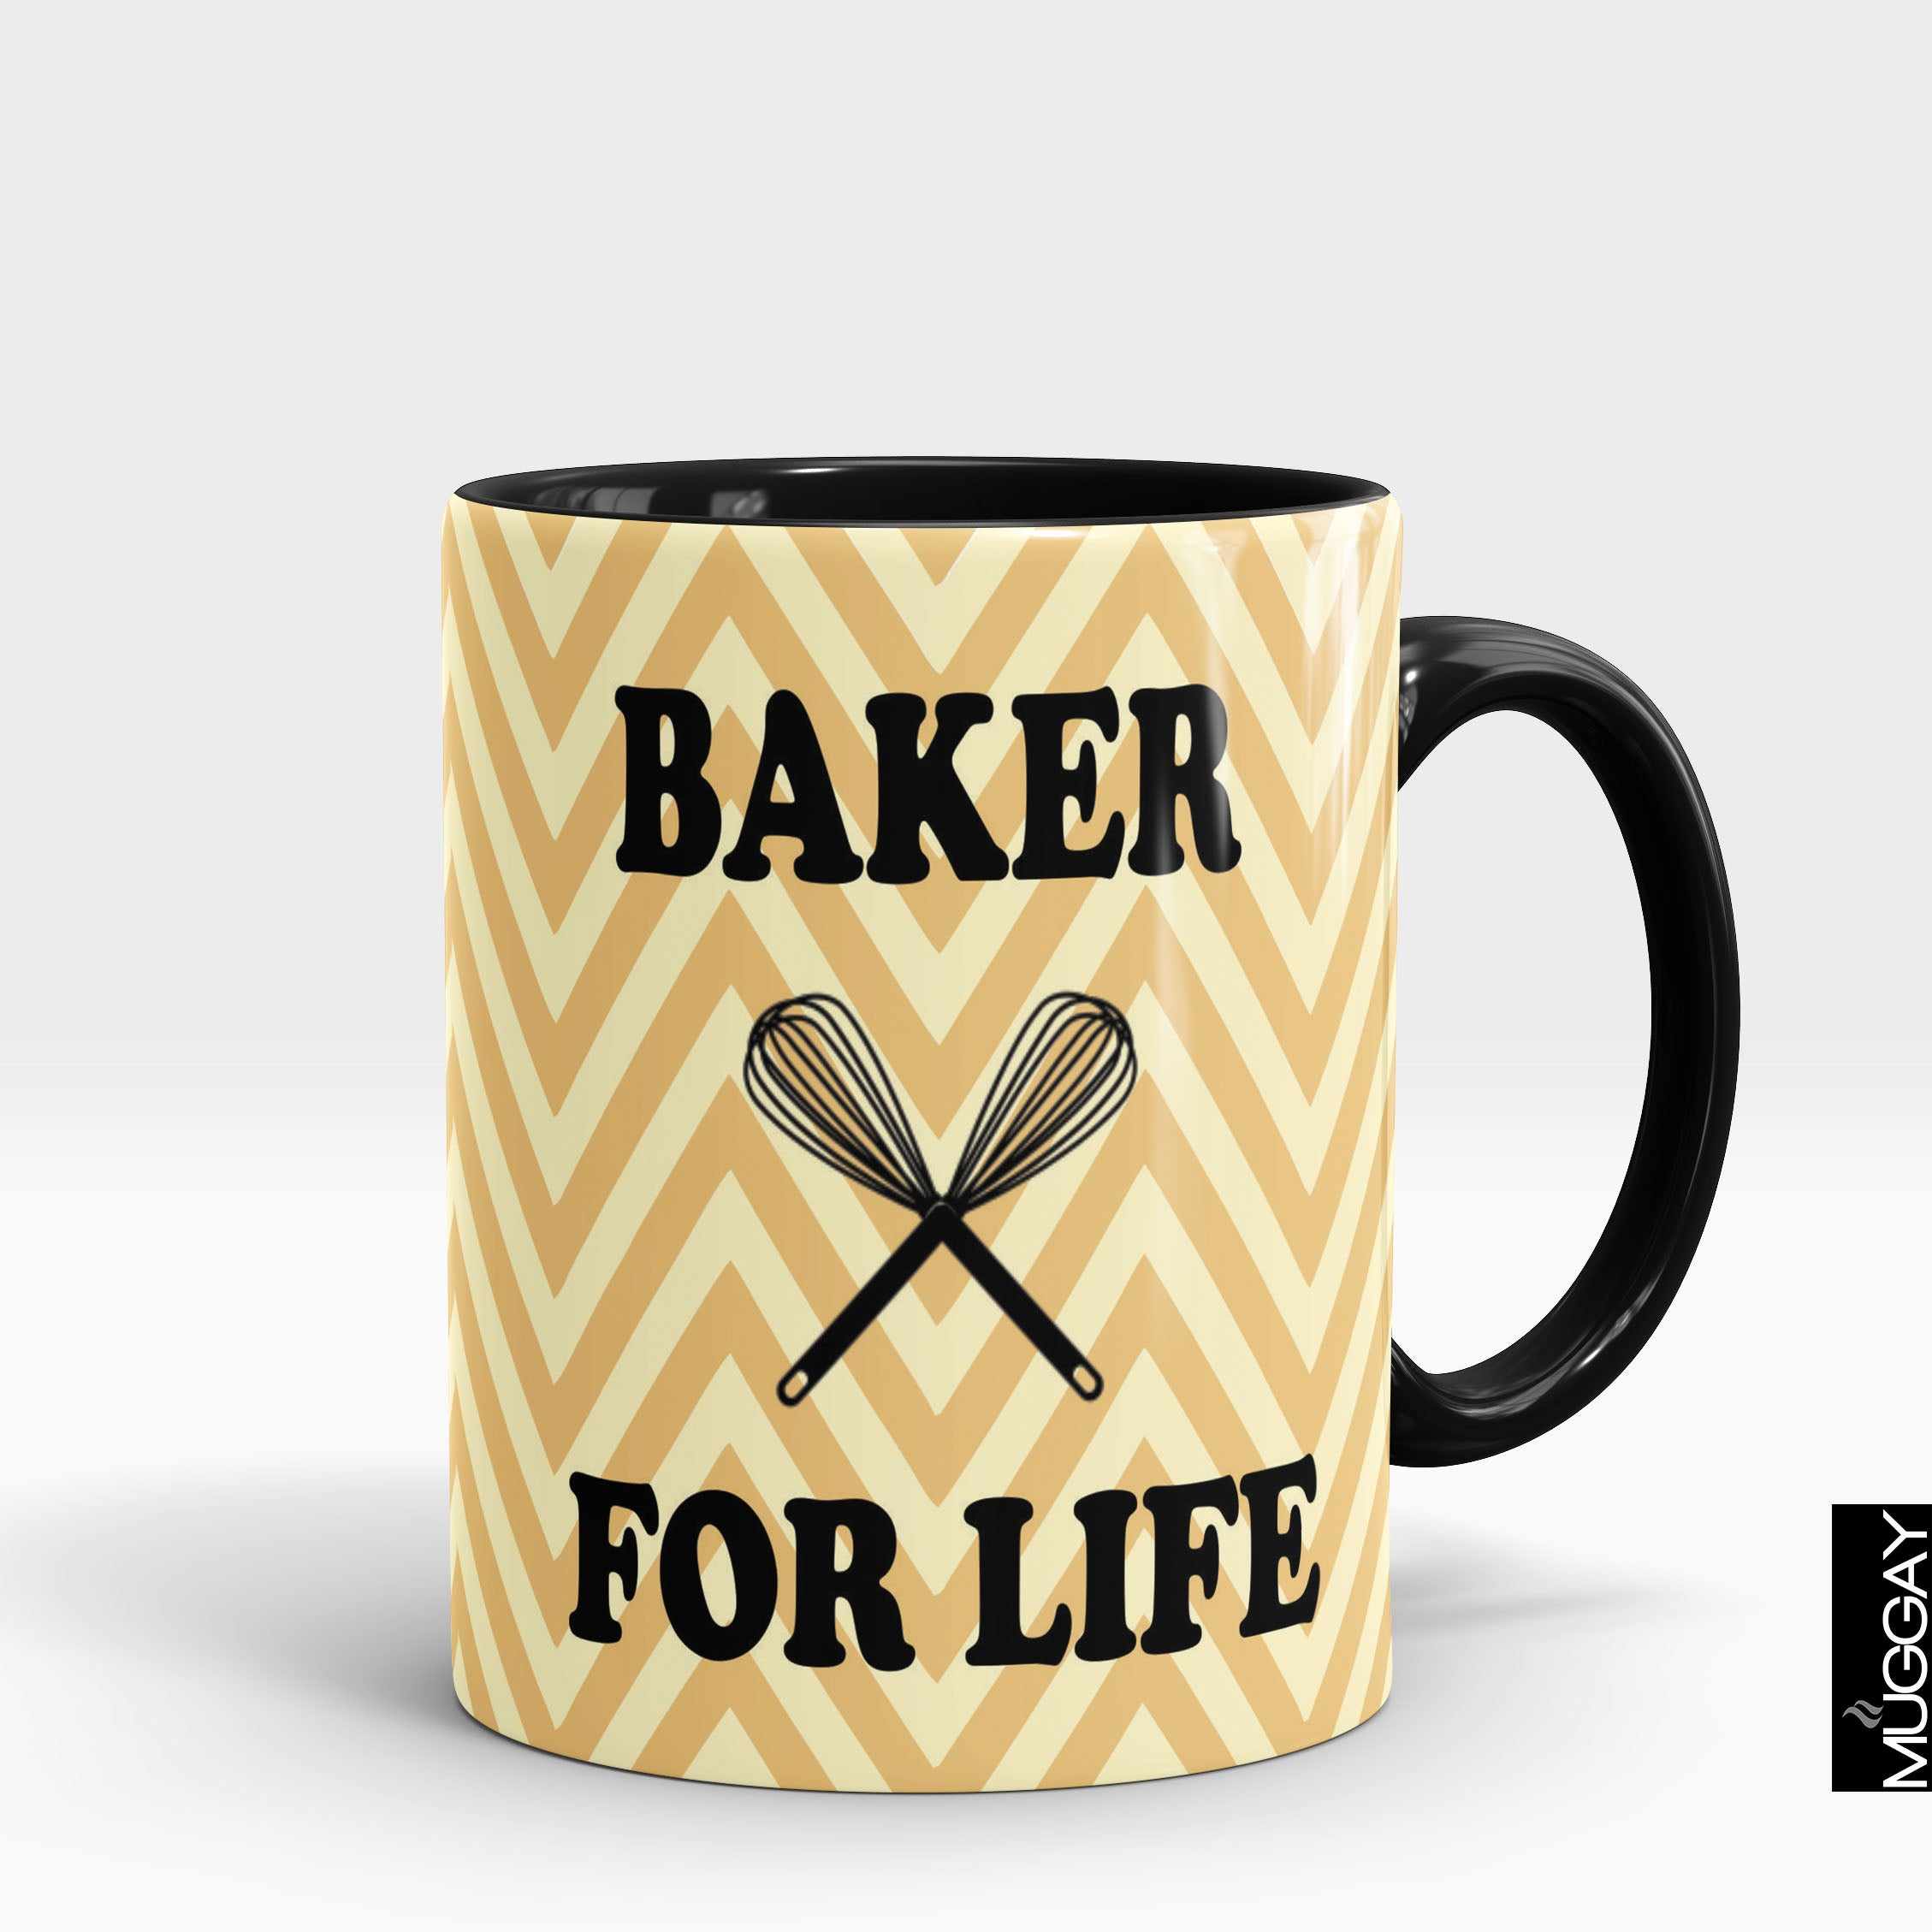 Baking Mug - bkr5 - Muggay.com - Mugs - Printing shop - truck Art mugs - Mug printing - Customized printing - Digital printing - Muggay